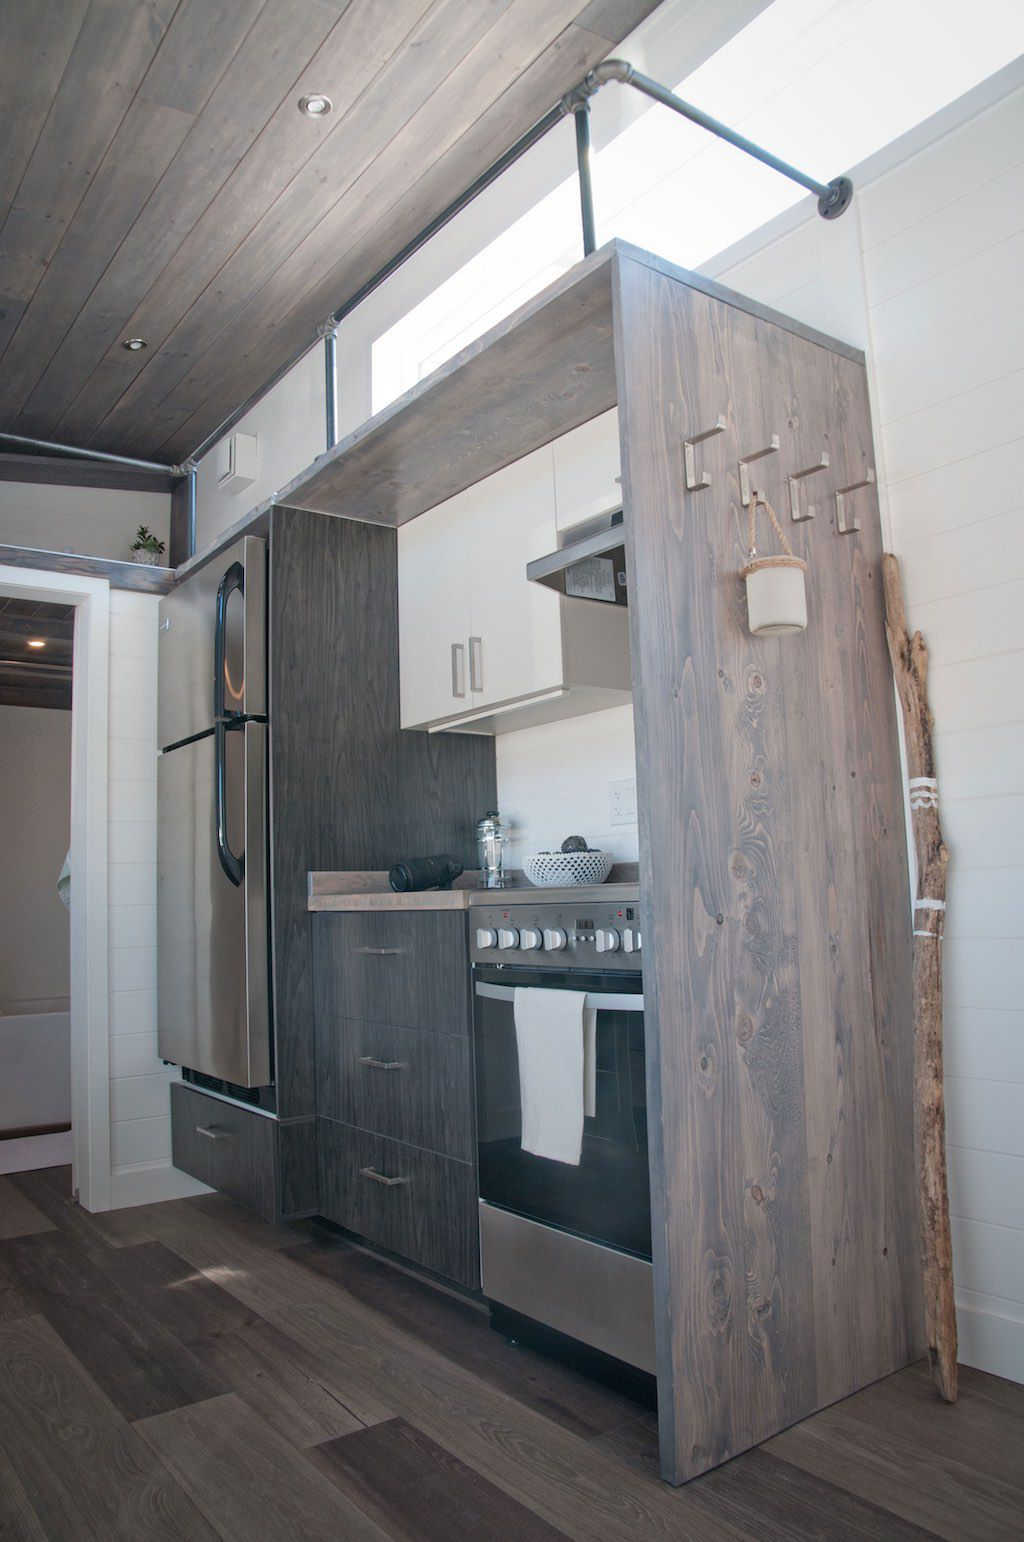 Tiny house with 'bedroom' offers minimalist chic - Curbed on bauhaus home design, modern architecture home design, self-sustaining home design, art deco home design, art nouveau home design, zero energy home design, baroque home design, minimalist home design, ultra modern home design,